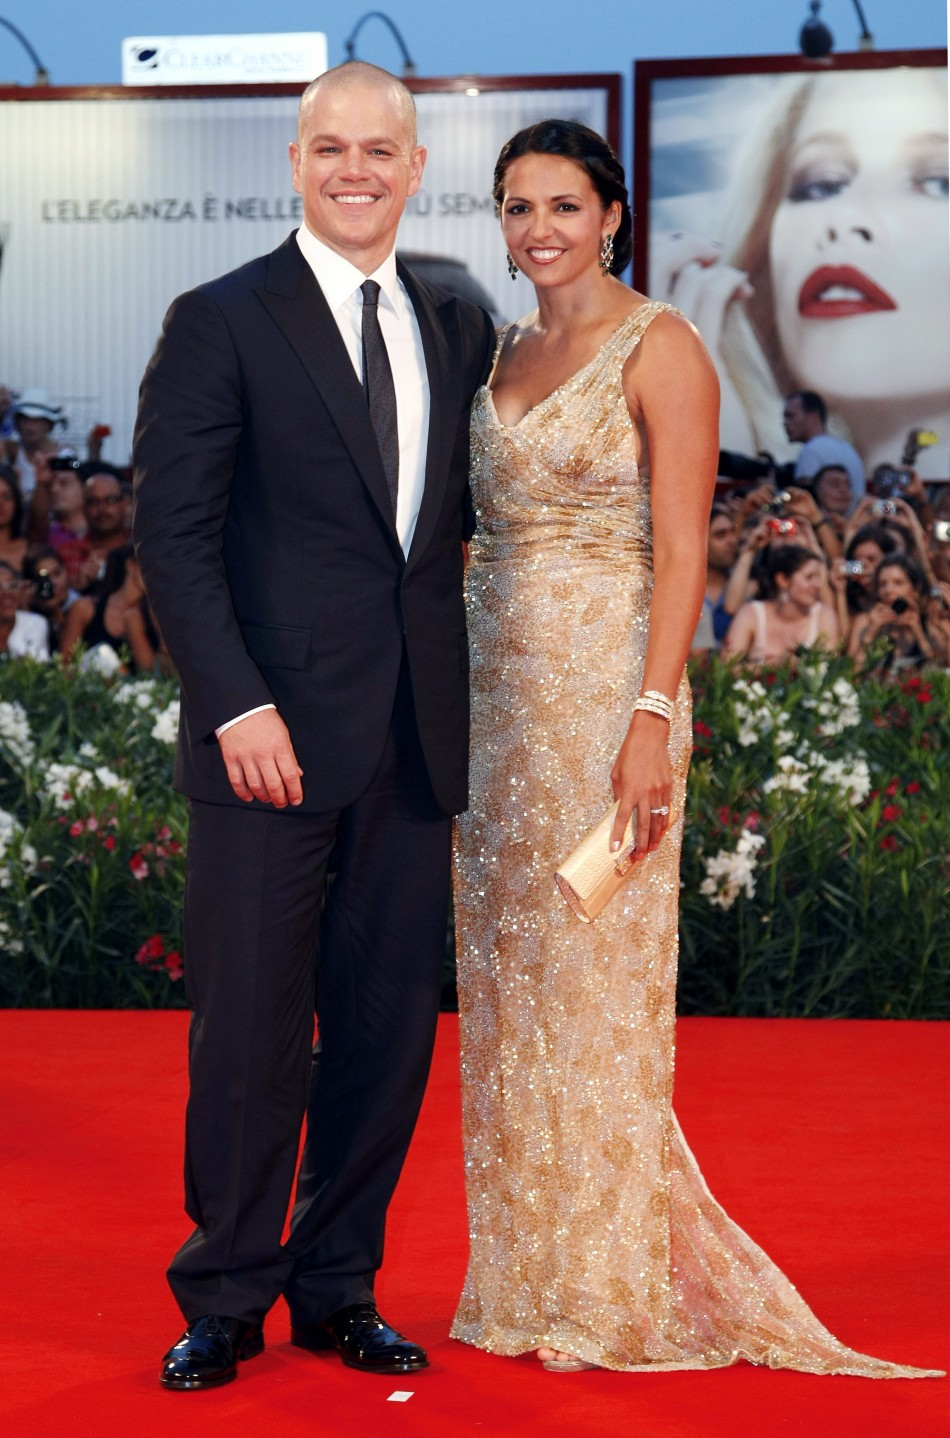 HOLLYWOOD ALL STARS: Matt Damon and his Wife Pictures